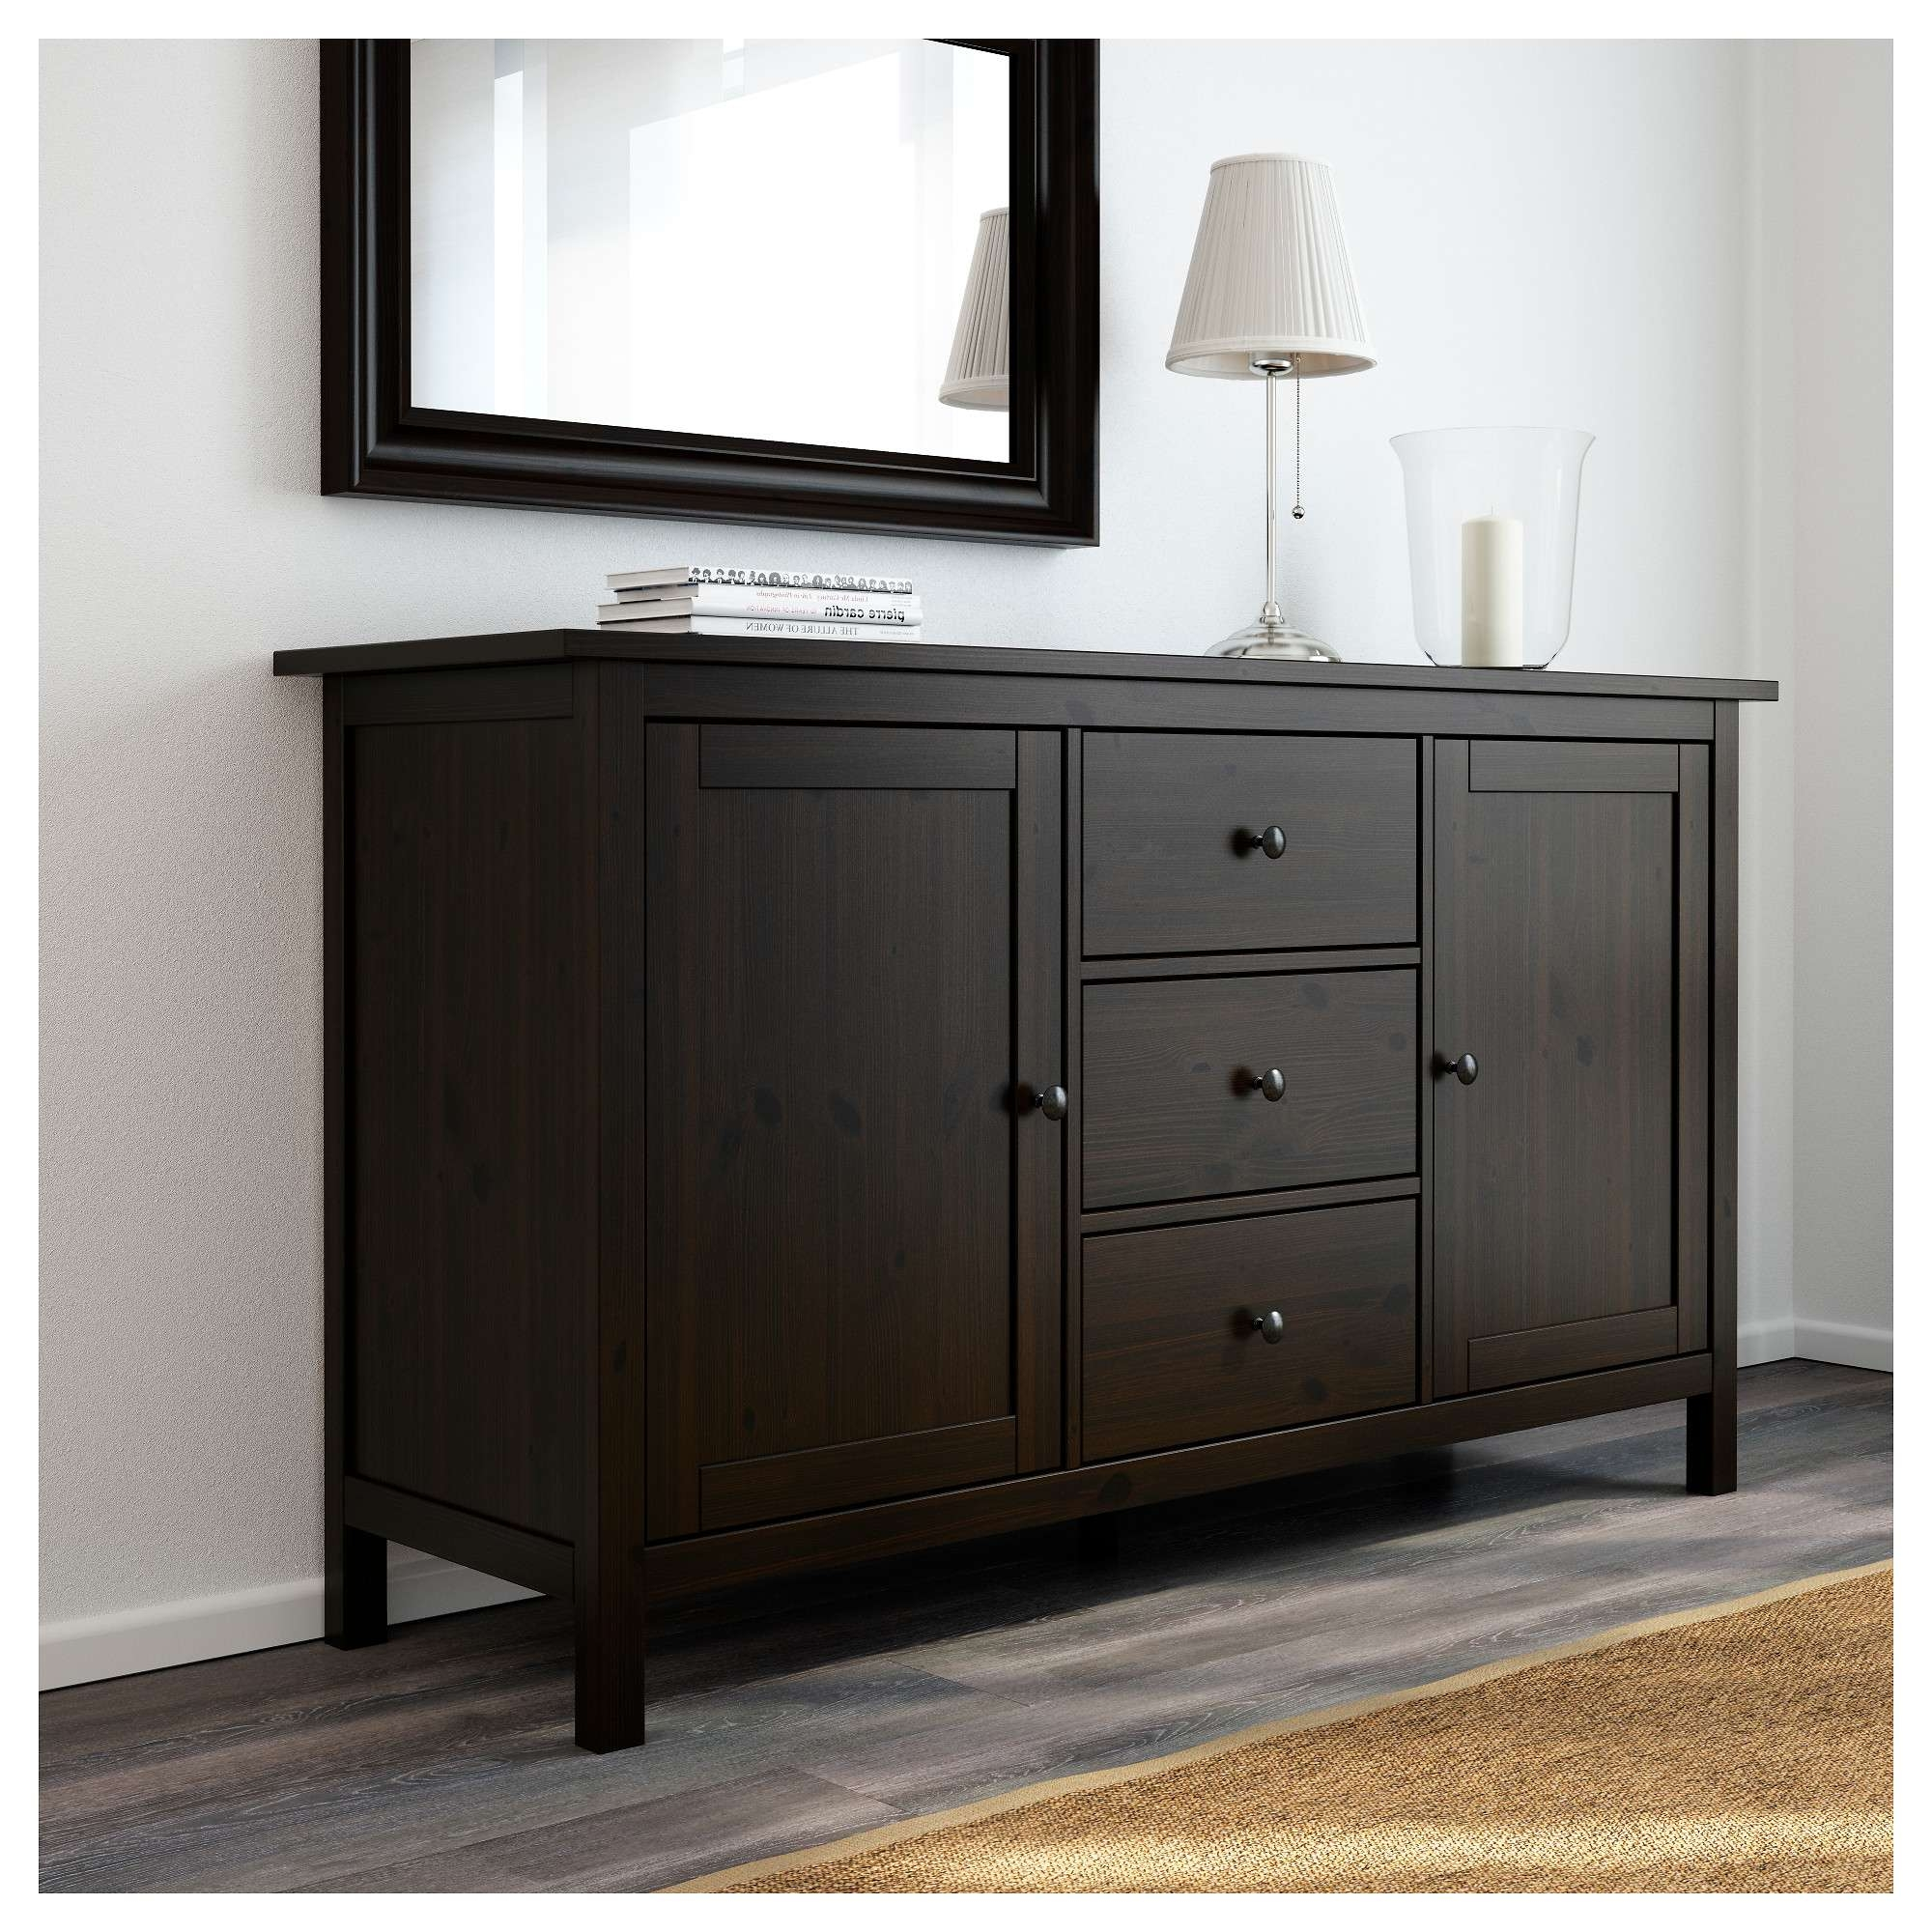 Hemnes Sideboard – Black Brown – Ikea In Canada Ikea Sideboards (View 3 of 20)